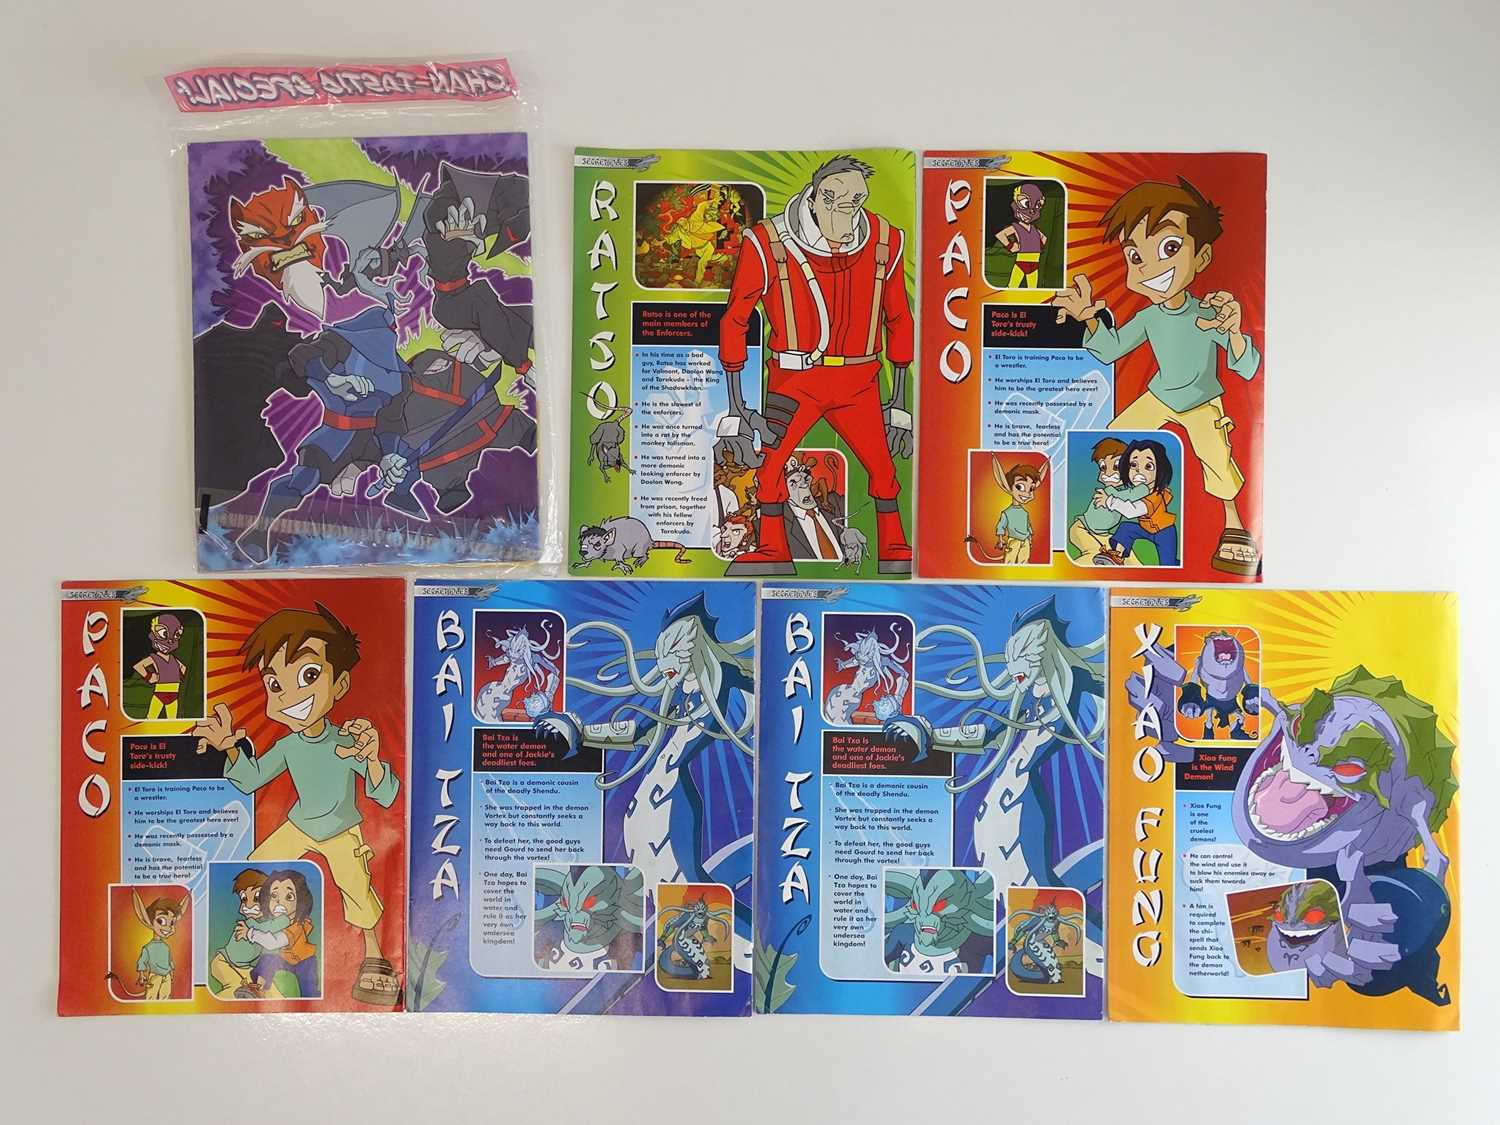 JACKIE CHAN ADVENTURES #16, 17 (x 2), 18 (x 2), 10 & CHANTASTIC SPECIAL - (7 in Lot) - (2003/06 - - Image 2 of 2